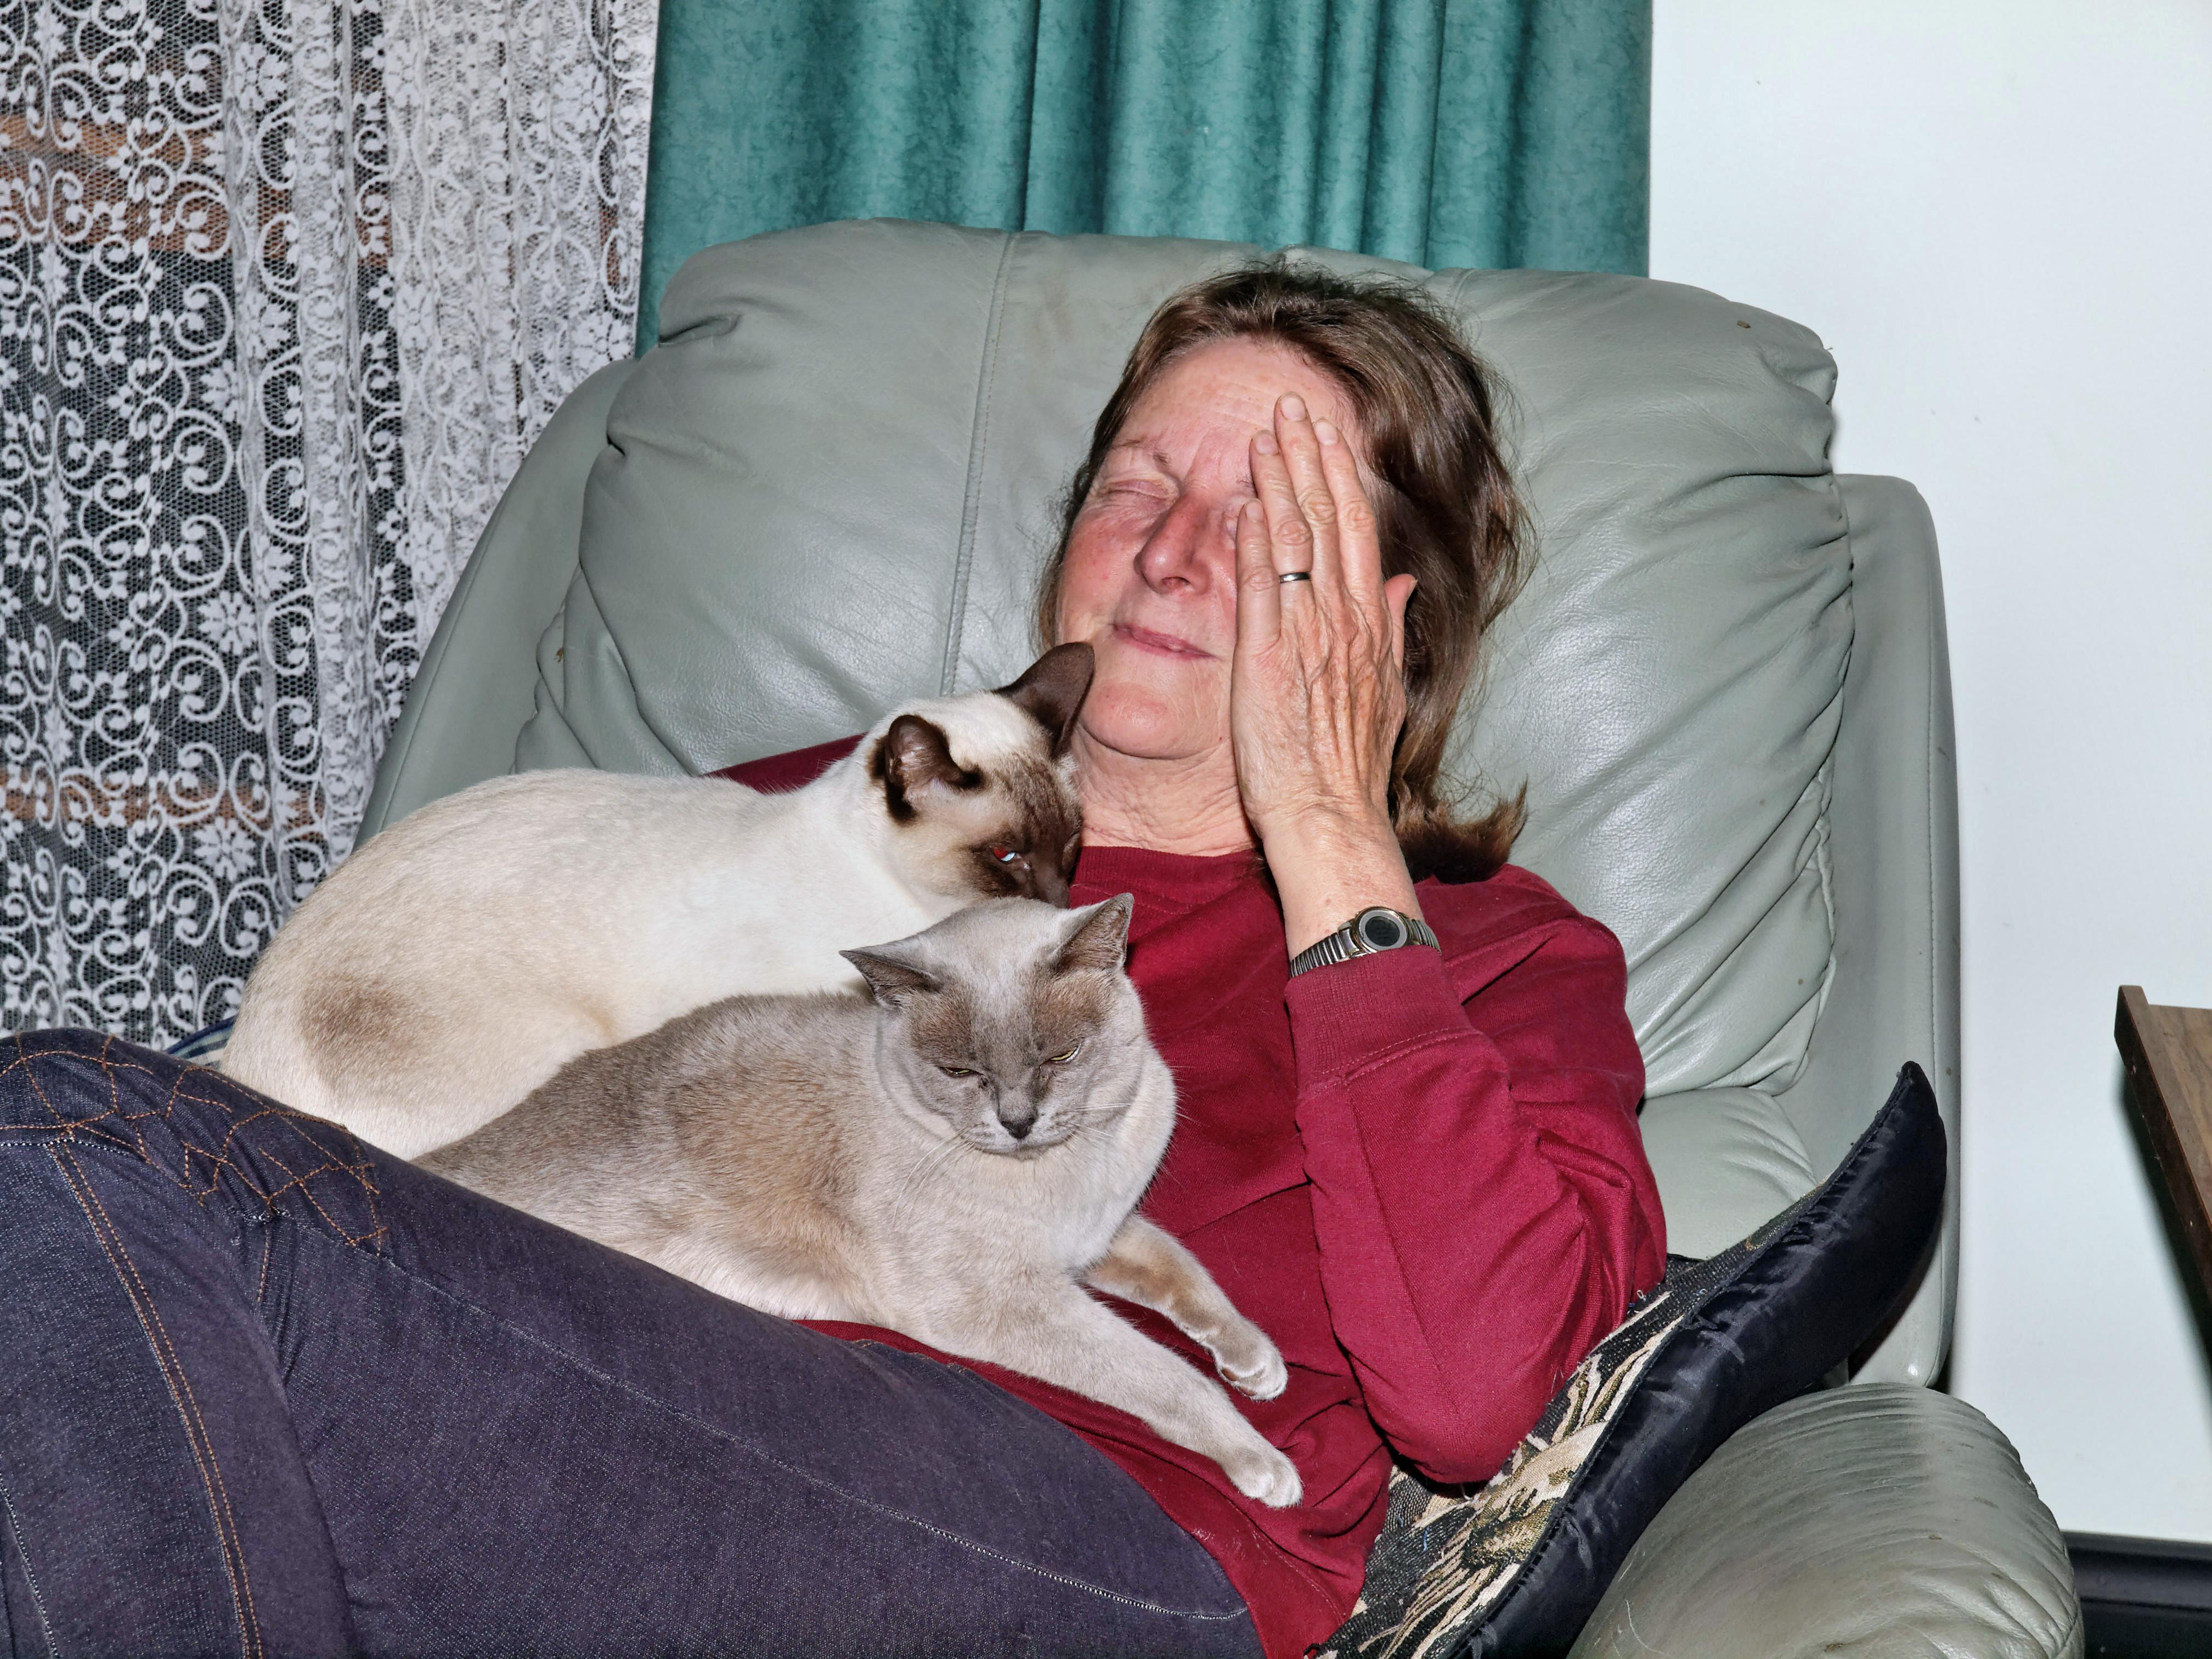 Yvonne-with-cats-2.jpeg